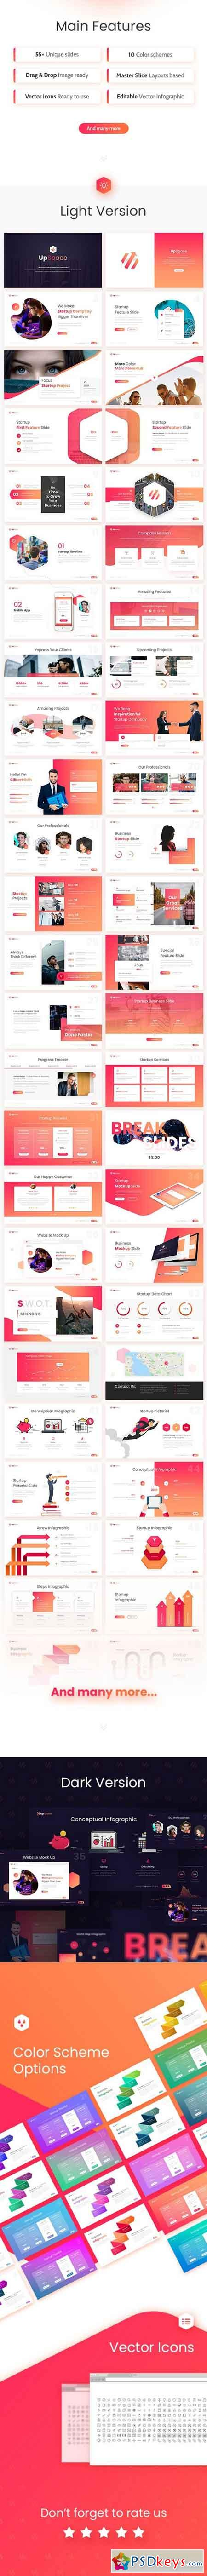 UpSpace Business Startup PowerPoint Presentation Template 22136825